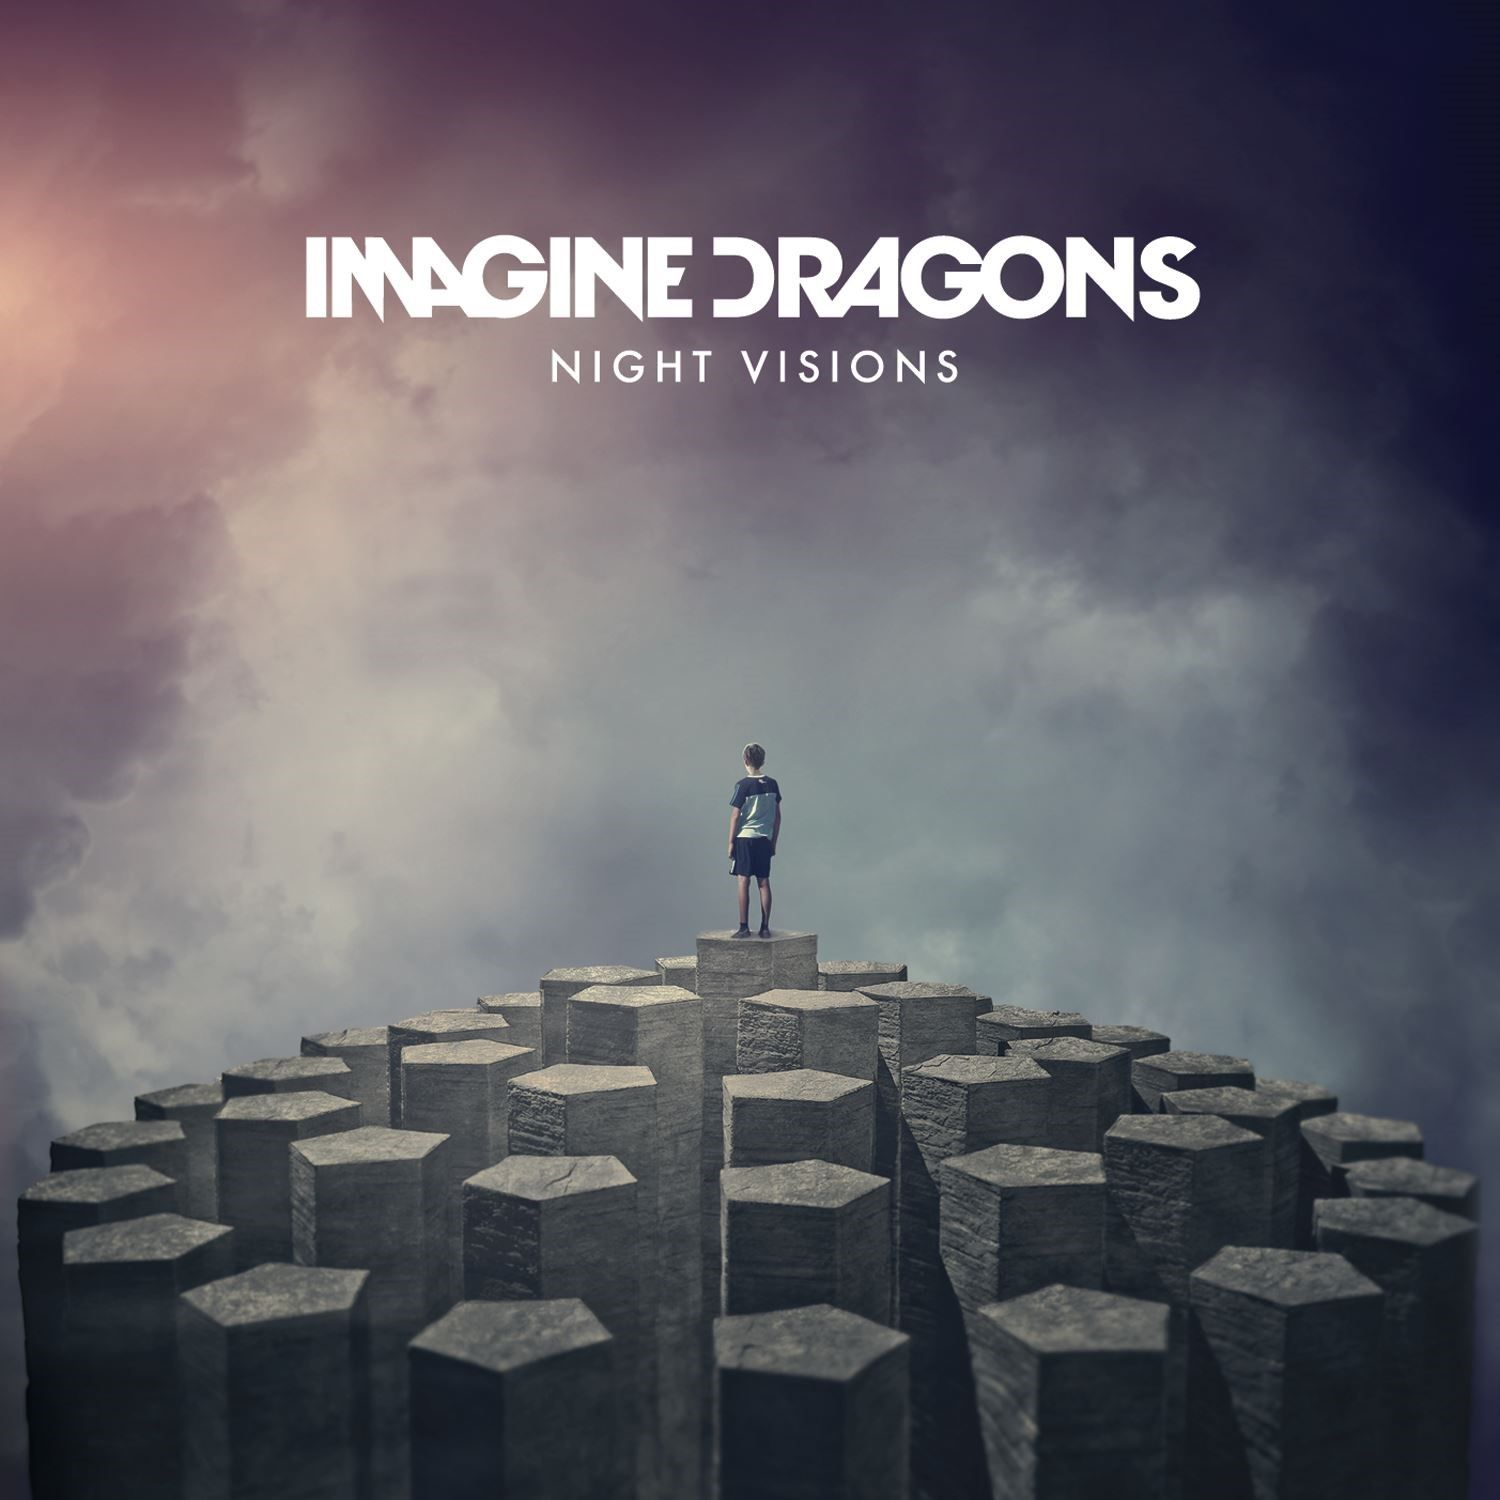 Картинки по запросу imagine dragons night visions itunes